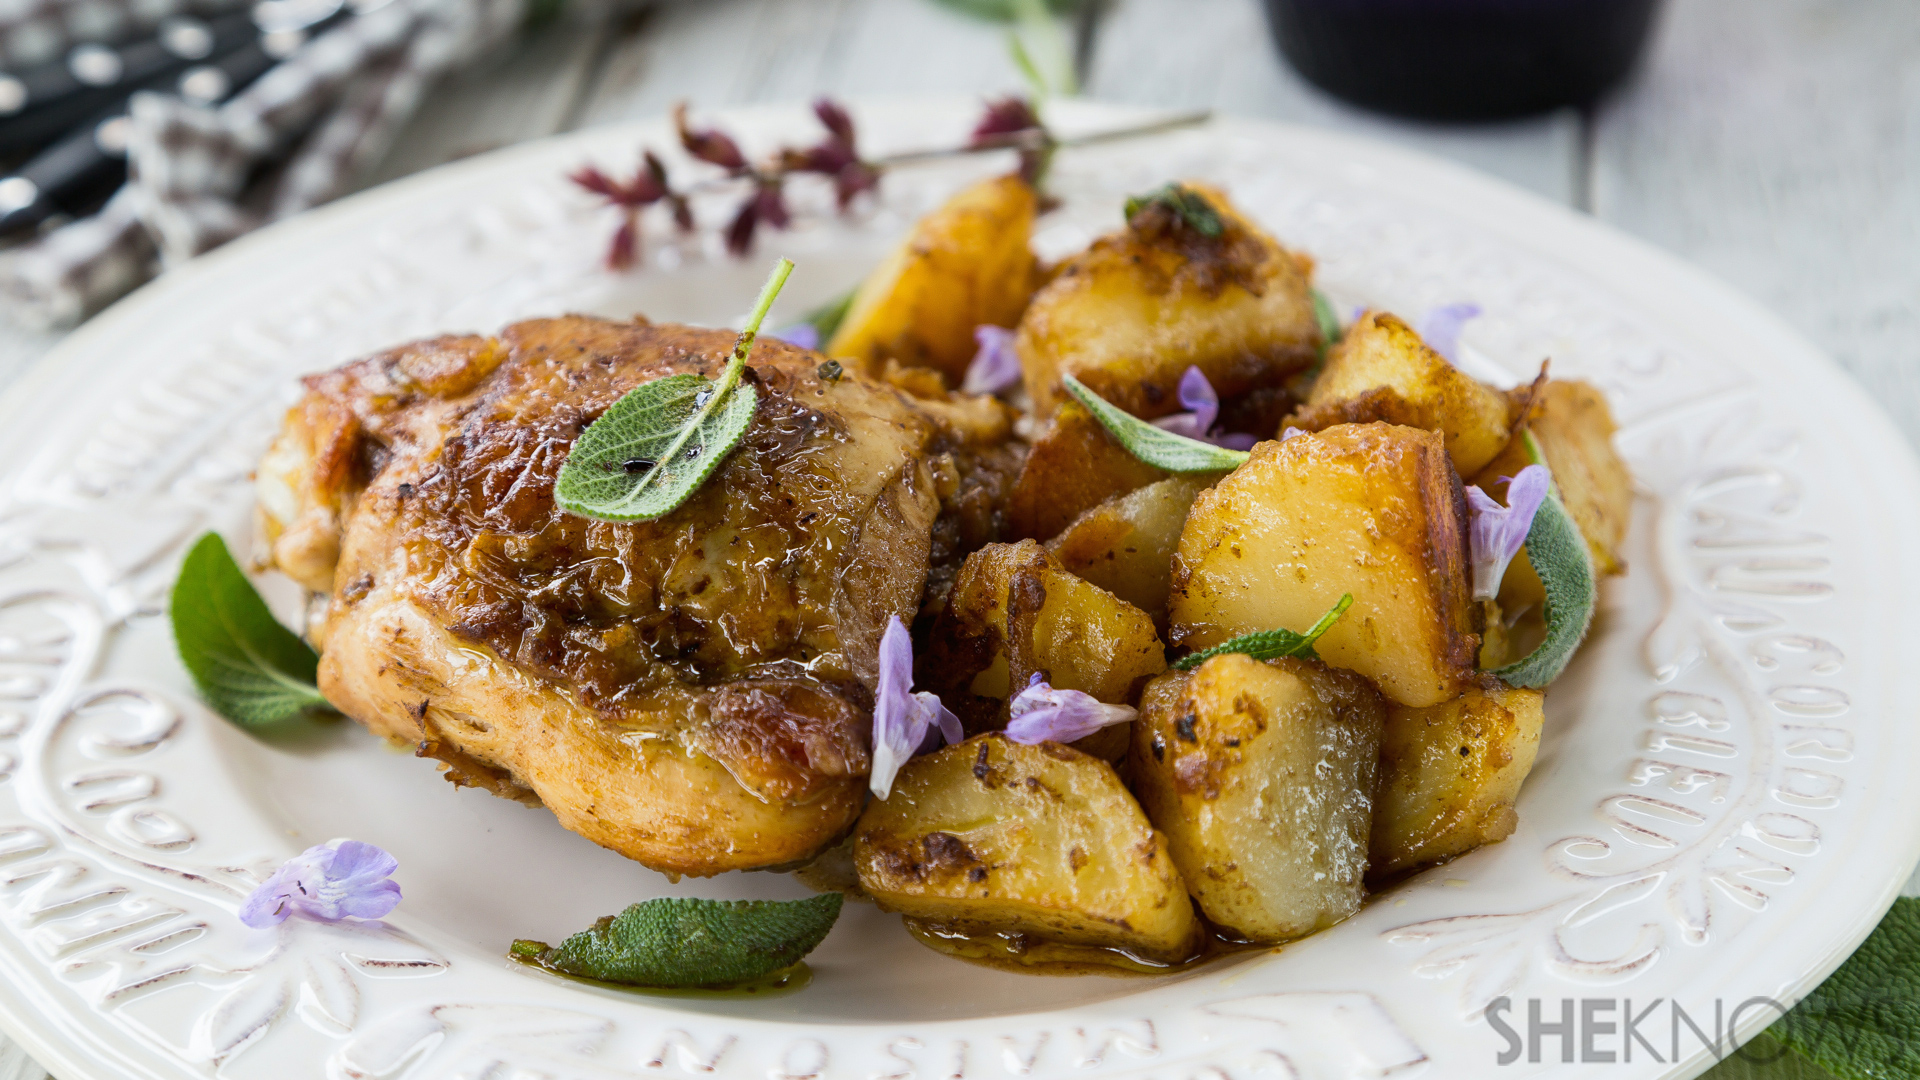 Pan-fried brandy chicken and potatoes with balsamic vinegar recipe